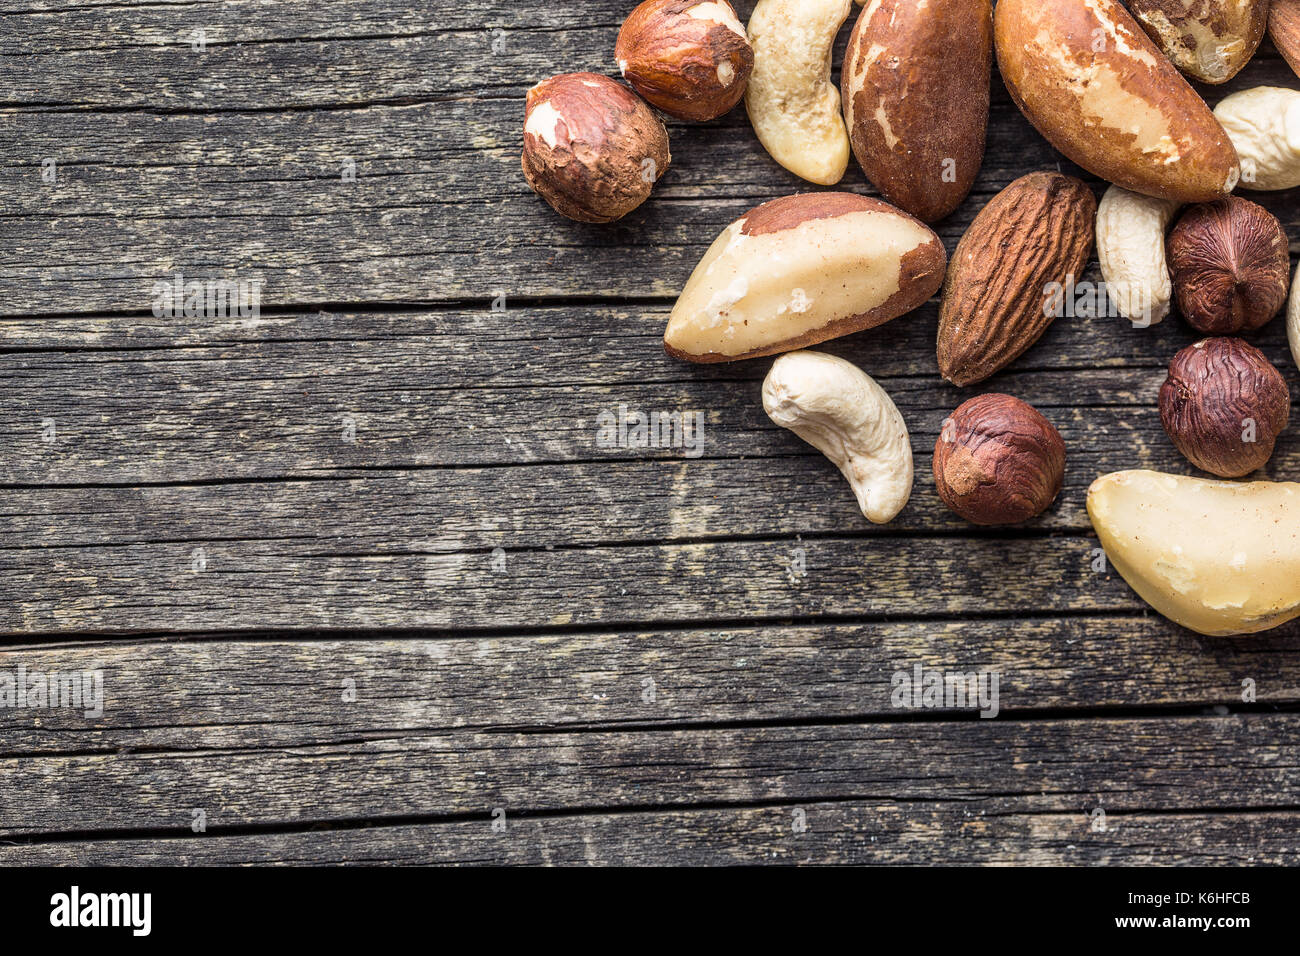 Different types of nuts. Hazelnuts, walnuts, almonds, brazil nuts and pistachio nuts on old wooden table. - Stock Image